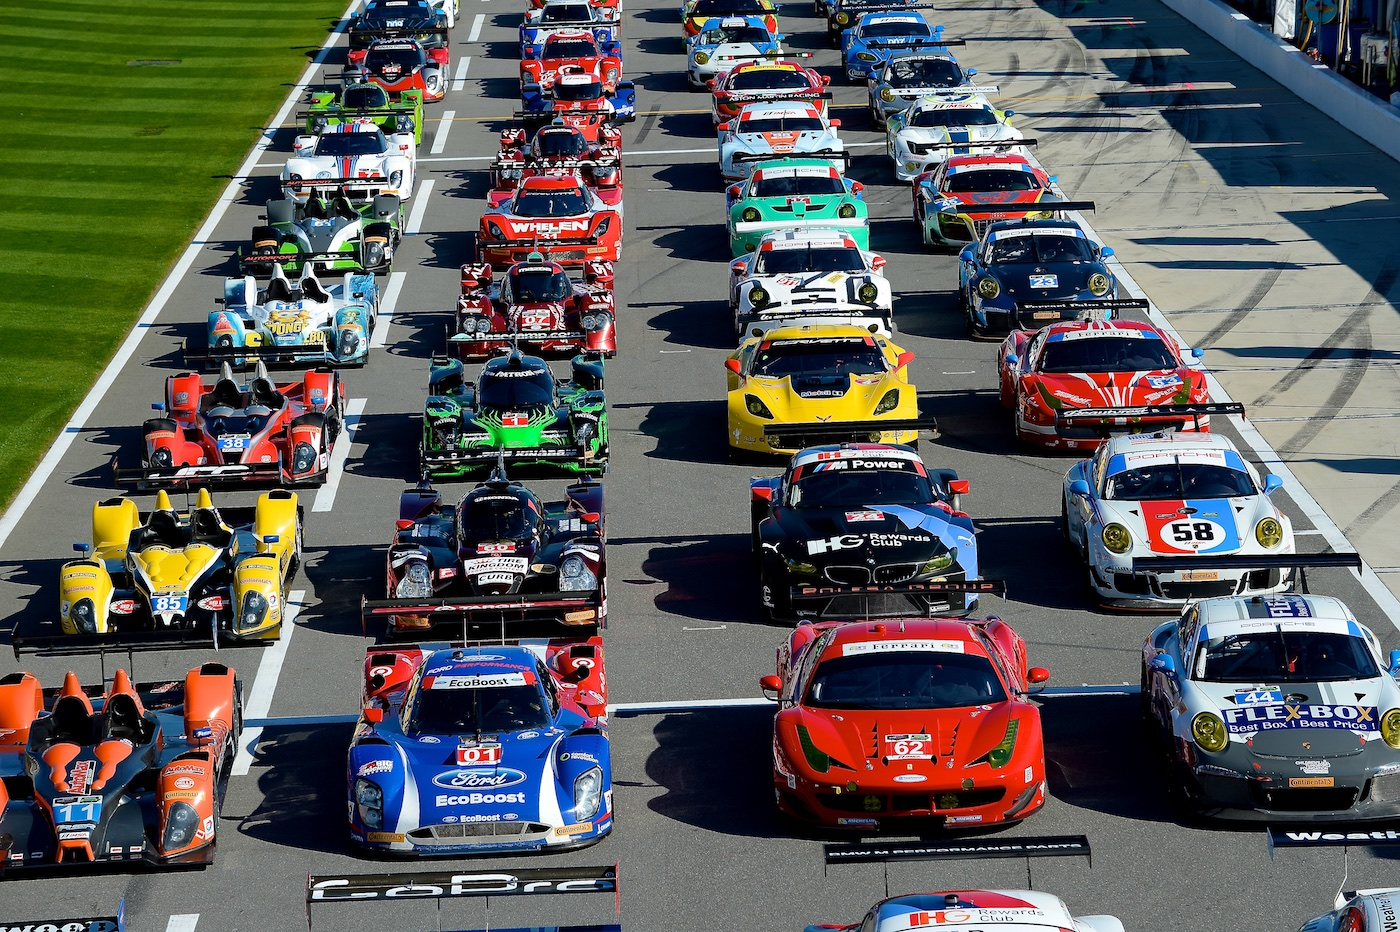 Get ready to go racing at the Rolex 24